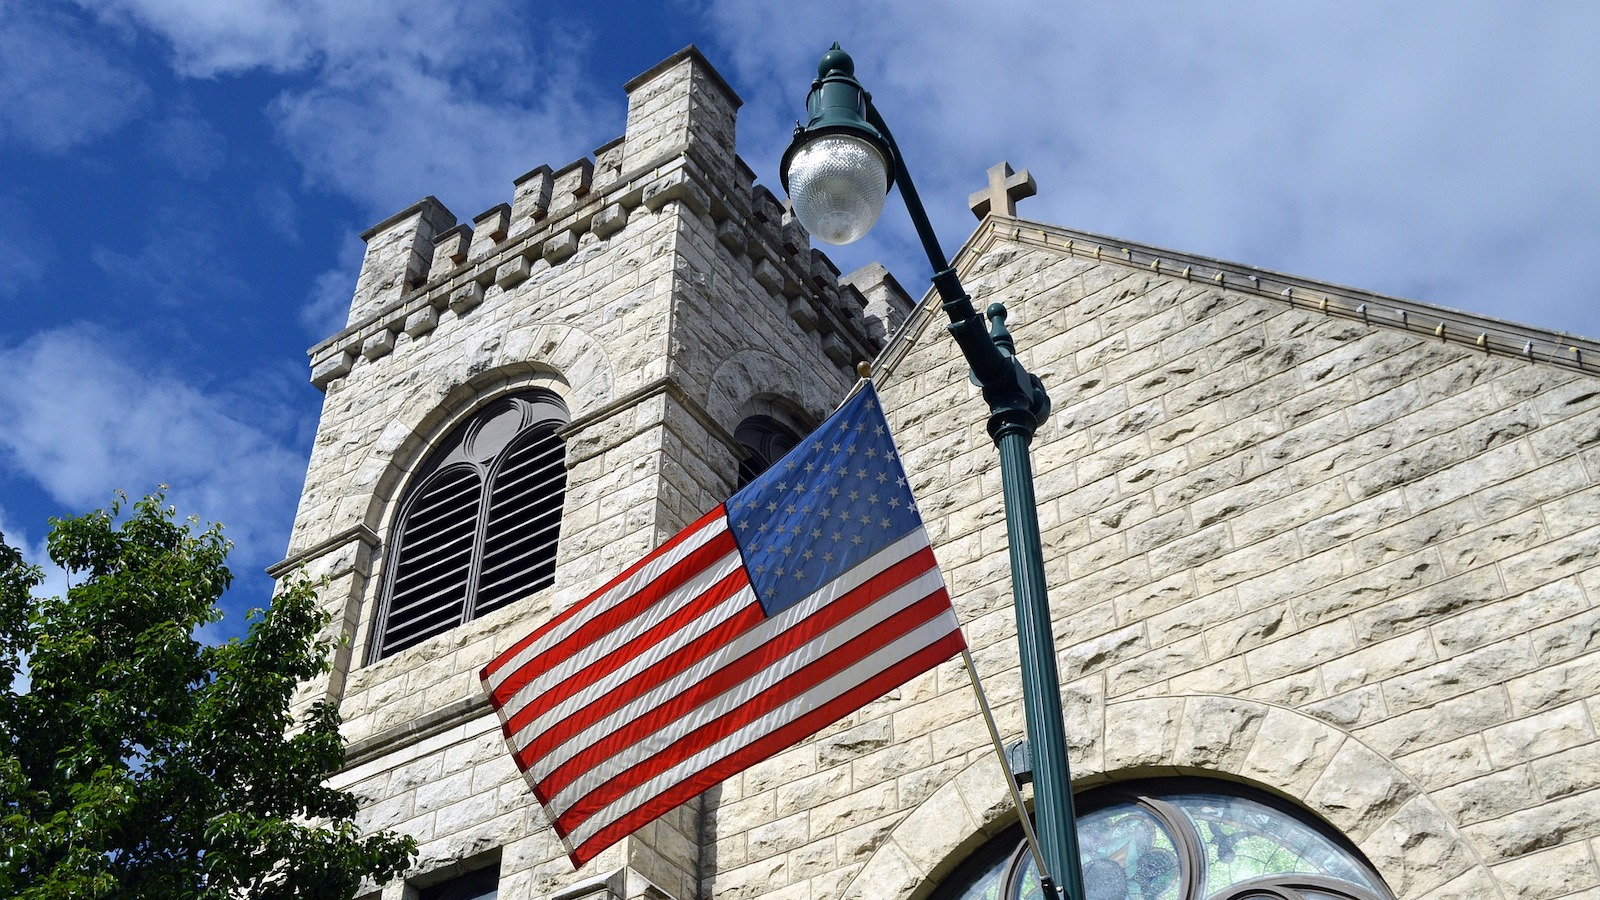 Church with an American flag outside.